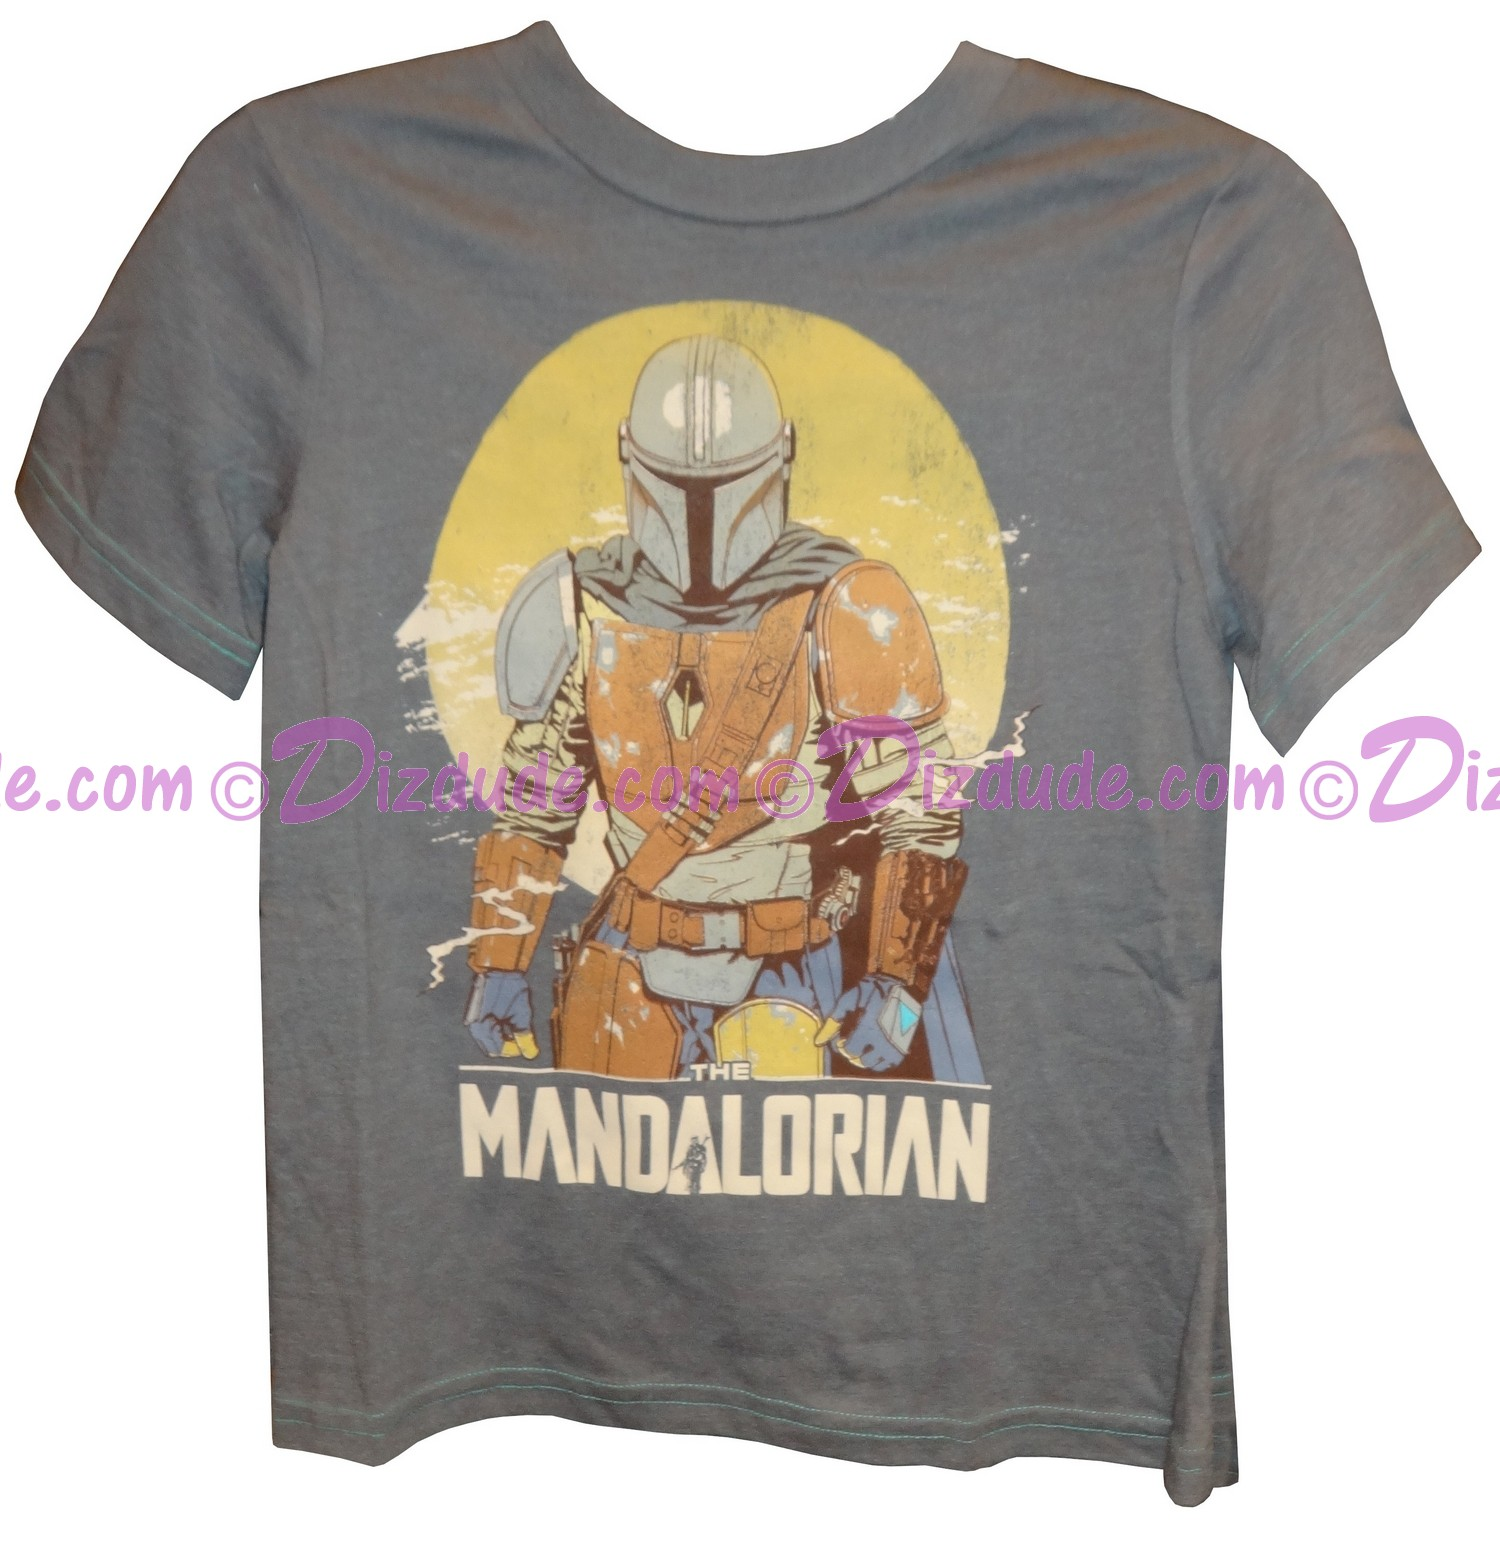 Disney Star Wars The Mandalorian Youth T-Shirt (Tshirt, T shirt or Tee) © Dizdude.com